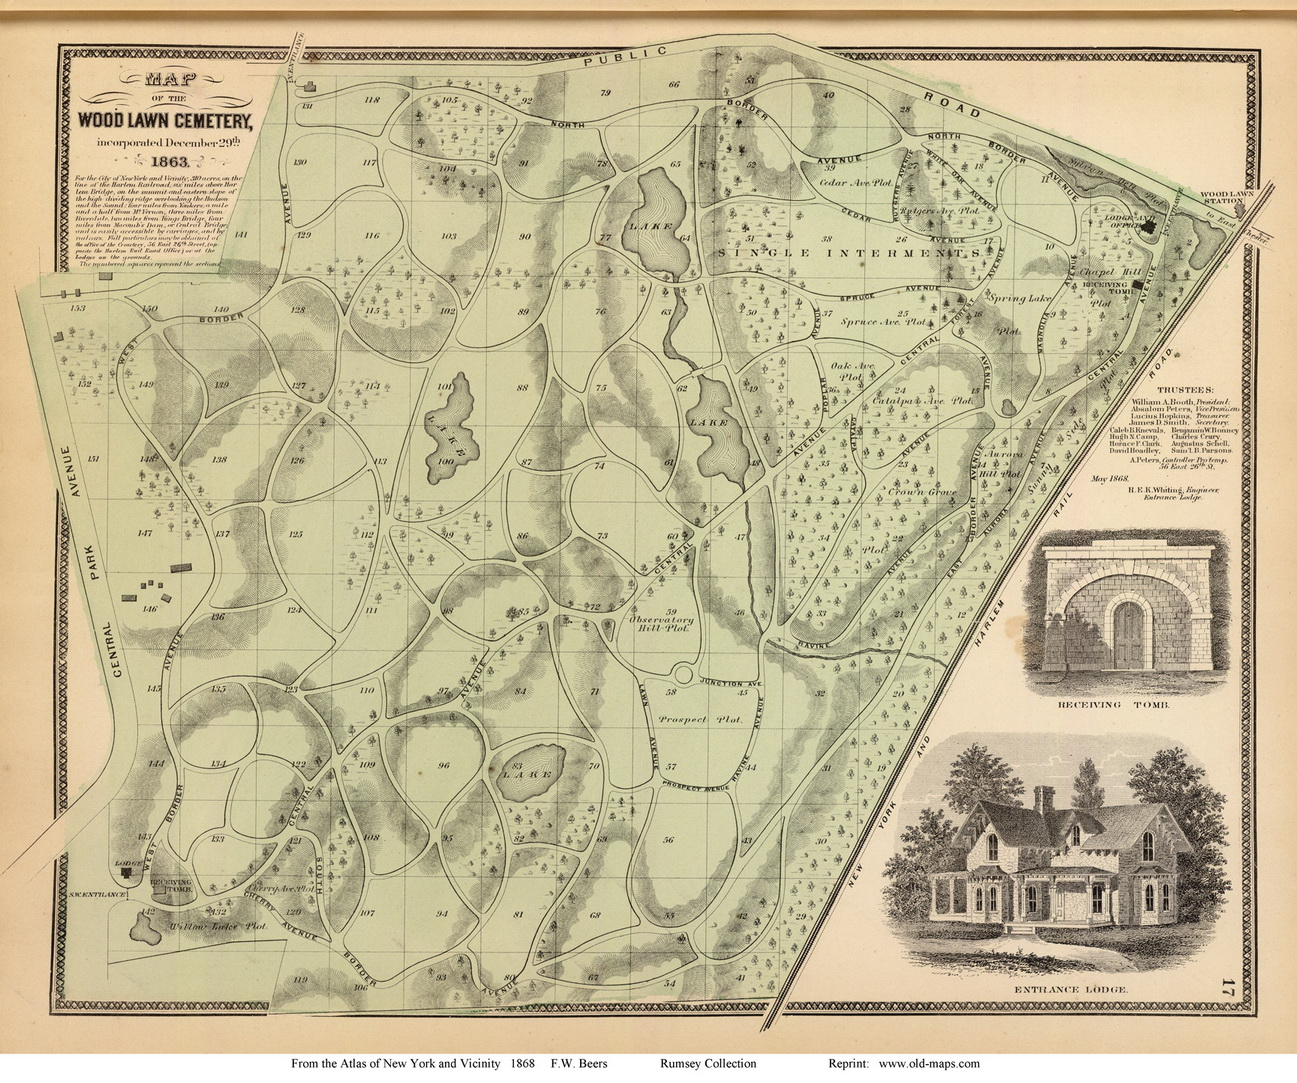 Woodlawn Cemetery Yonkers New York 1868 Old Town Map Reprint